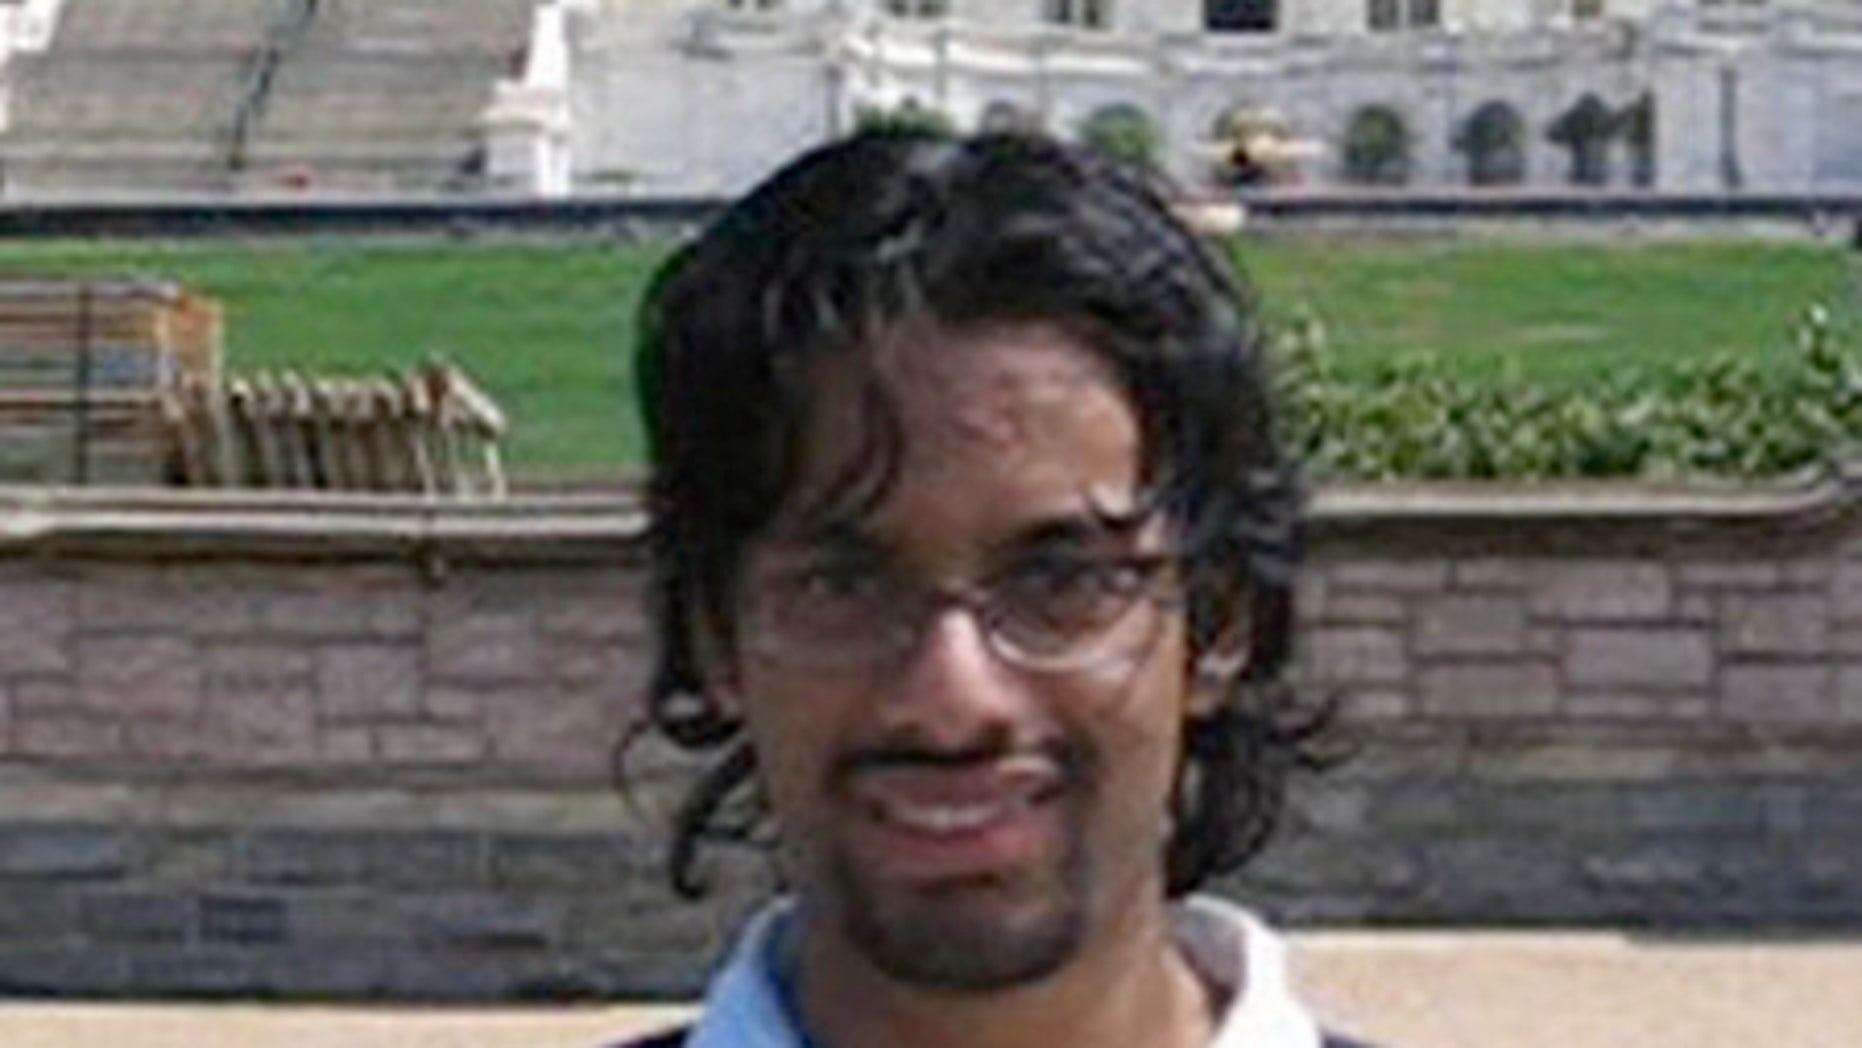 Ehsanul Islam Sadequee poses in front of the U.S. Capitol in a video recorded by his friend, a convicted terrorist, during their 2005 trip to Washington.